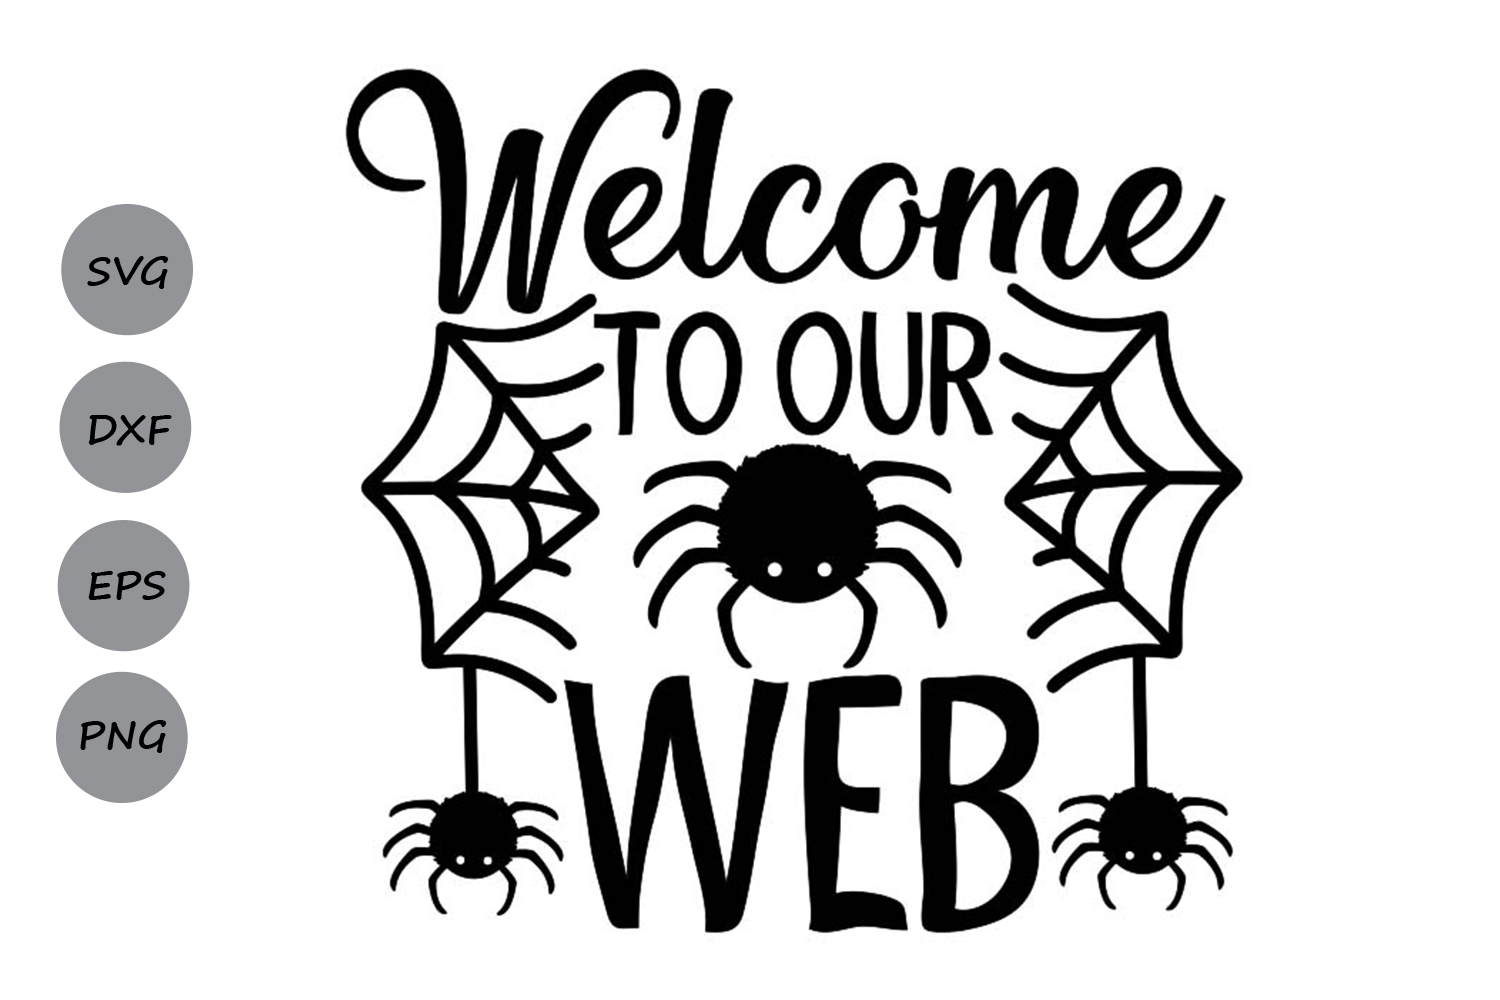 Download Free Welcome To Our Web Svg Graphic By Cosmosfineart Creative Fabrica for Cricut Explore, Silhouette and other cutting machines.